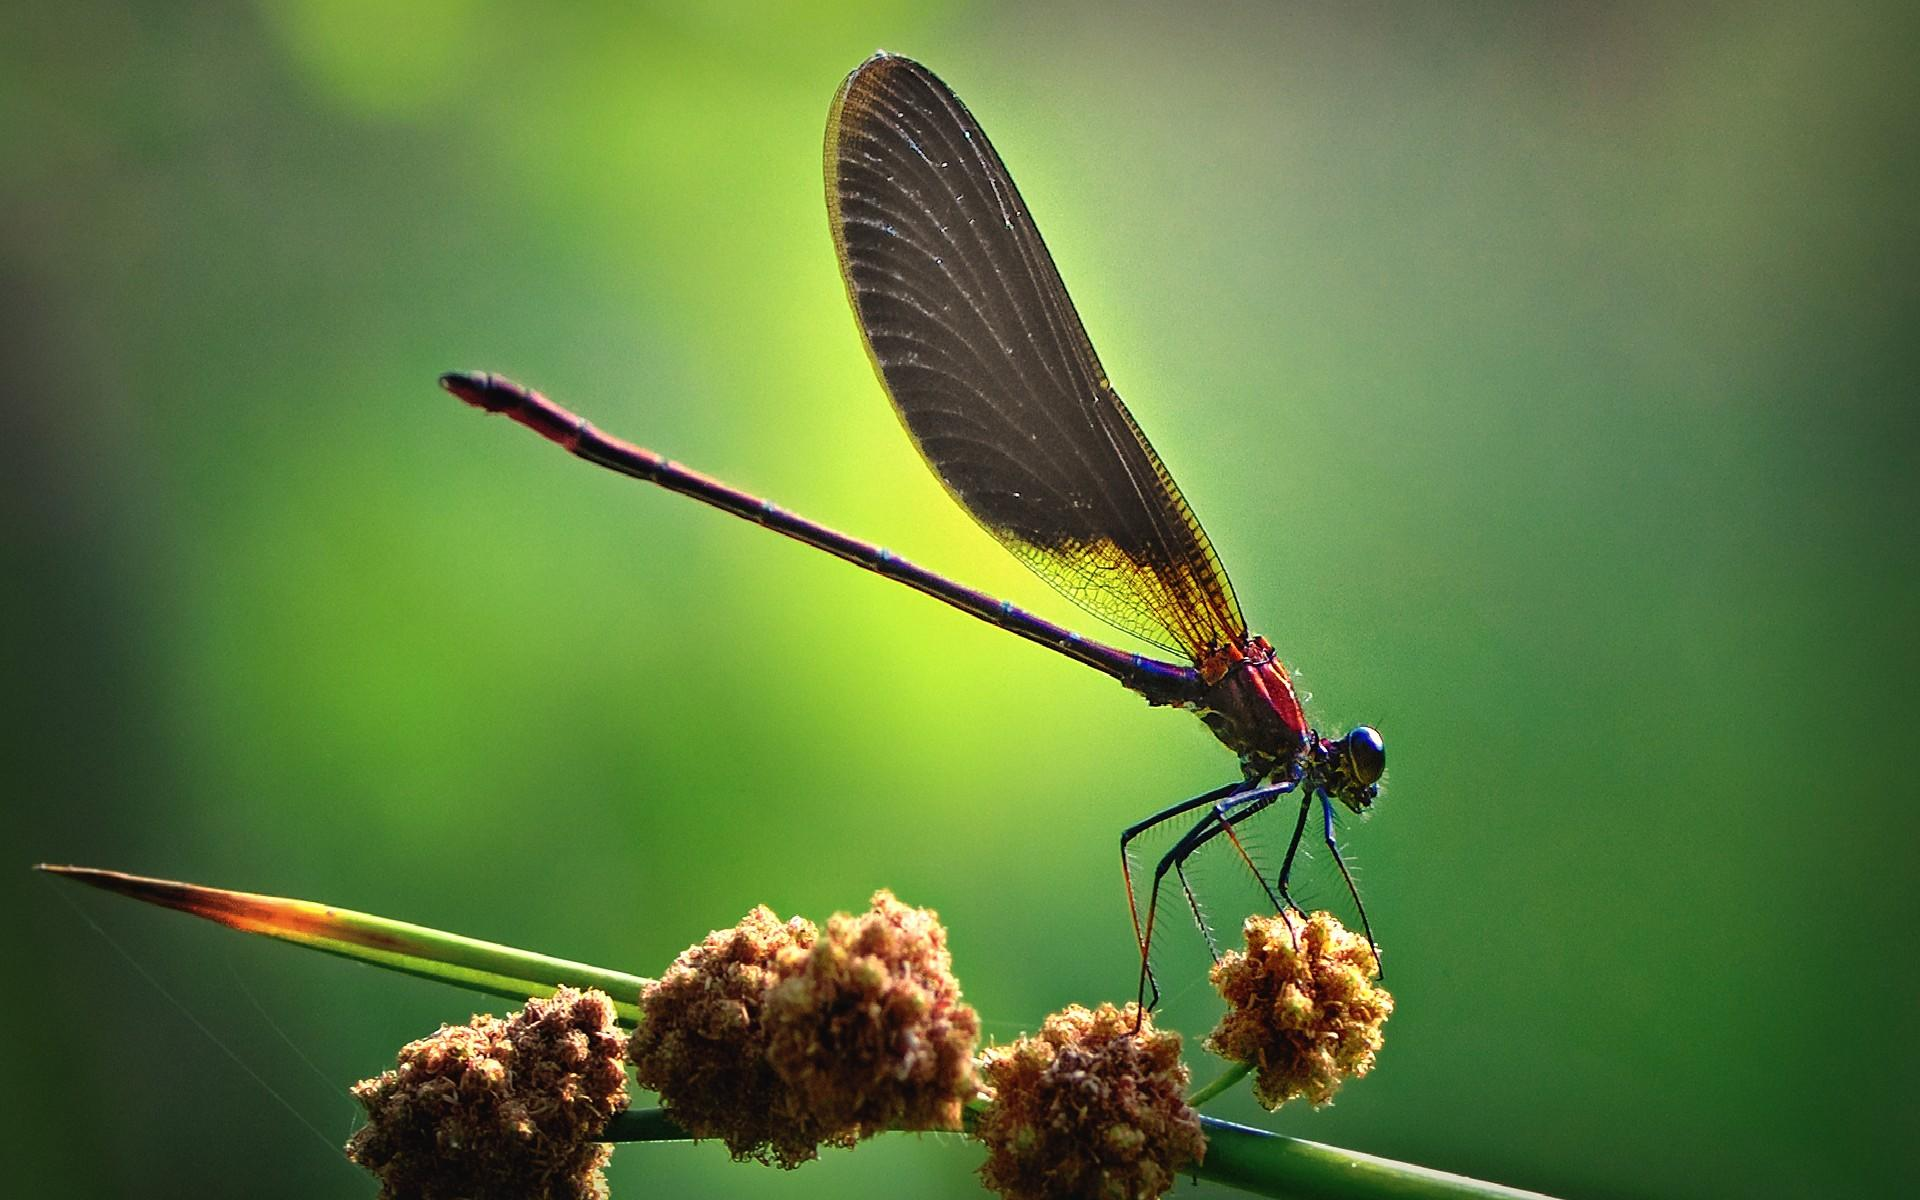 Cool Dragonfly Wallpaper